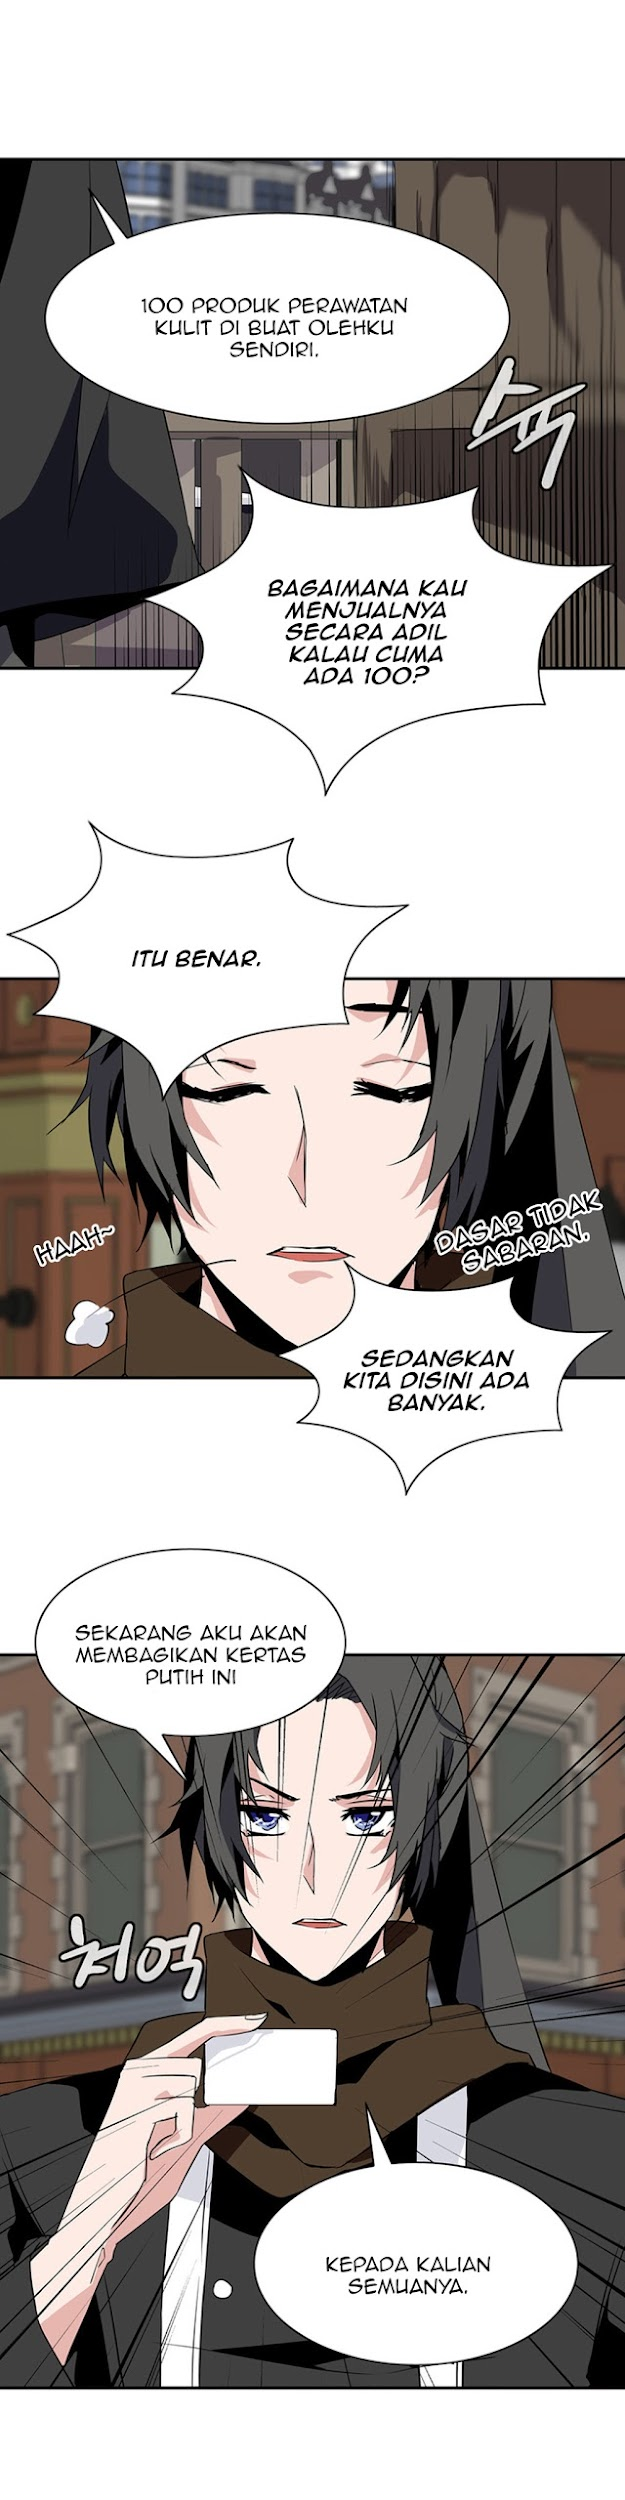 Dilarang COPAS - situs resmi www.mangacanblog.com - Komik wizardly tower 030 - chapter 30 31 Indonesia wizardly tower 030 - chapter 30 Terbaru 18|Baca Manga Komik Indonesia|Mangacan